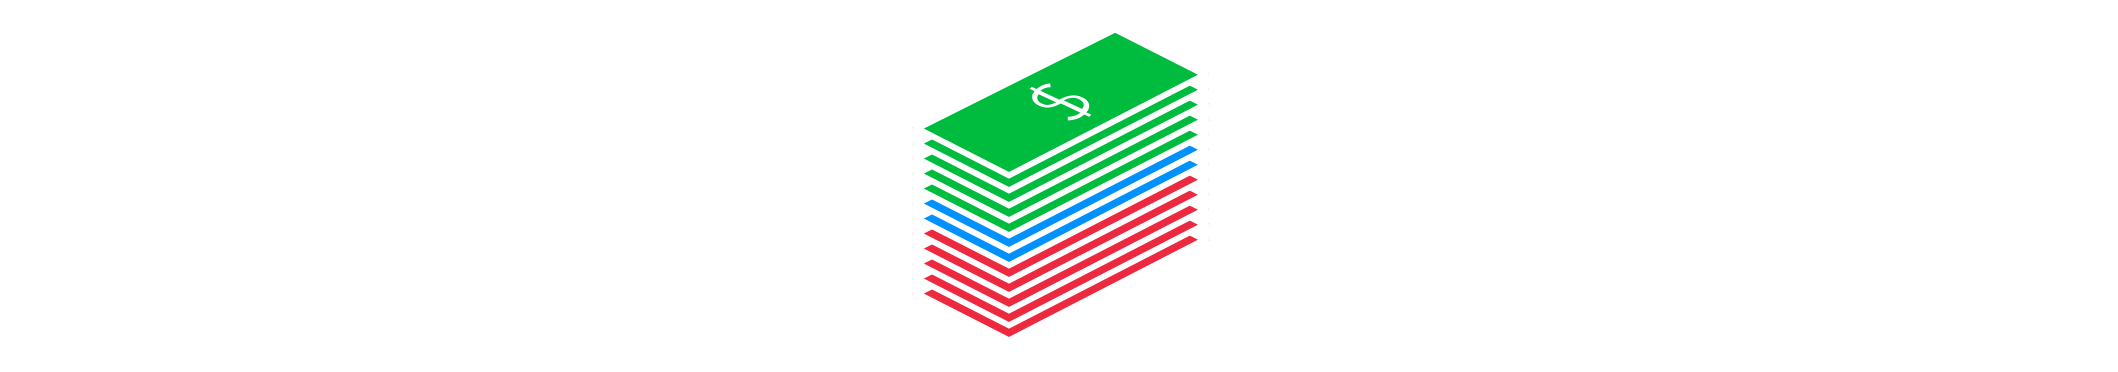 Logo-White-Wide.png